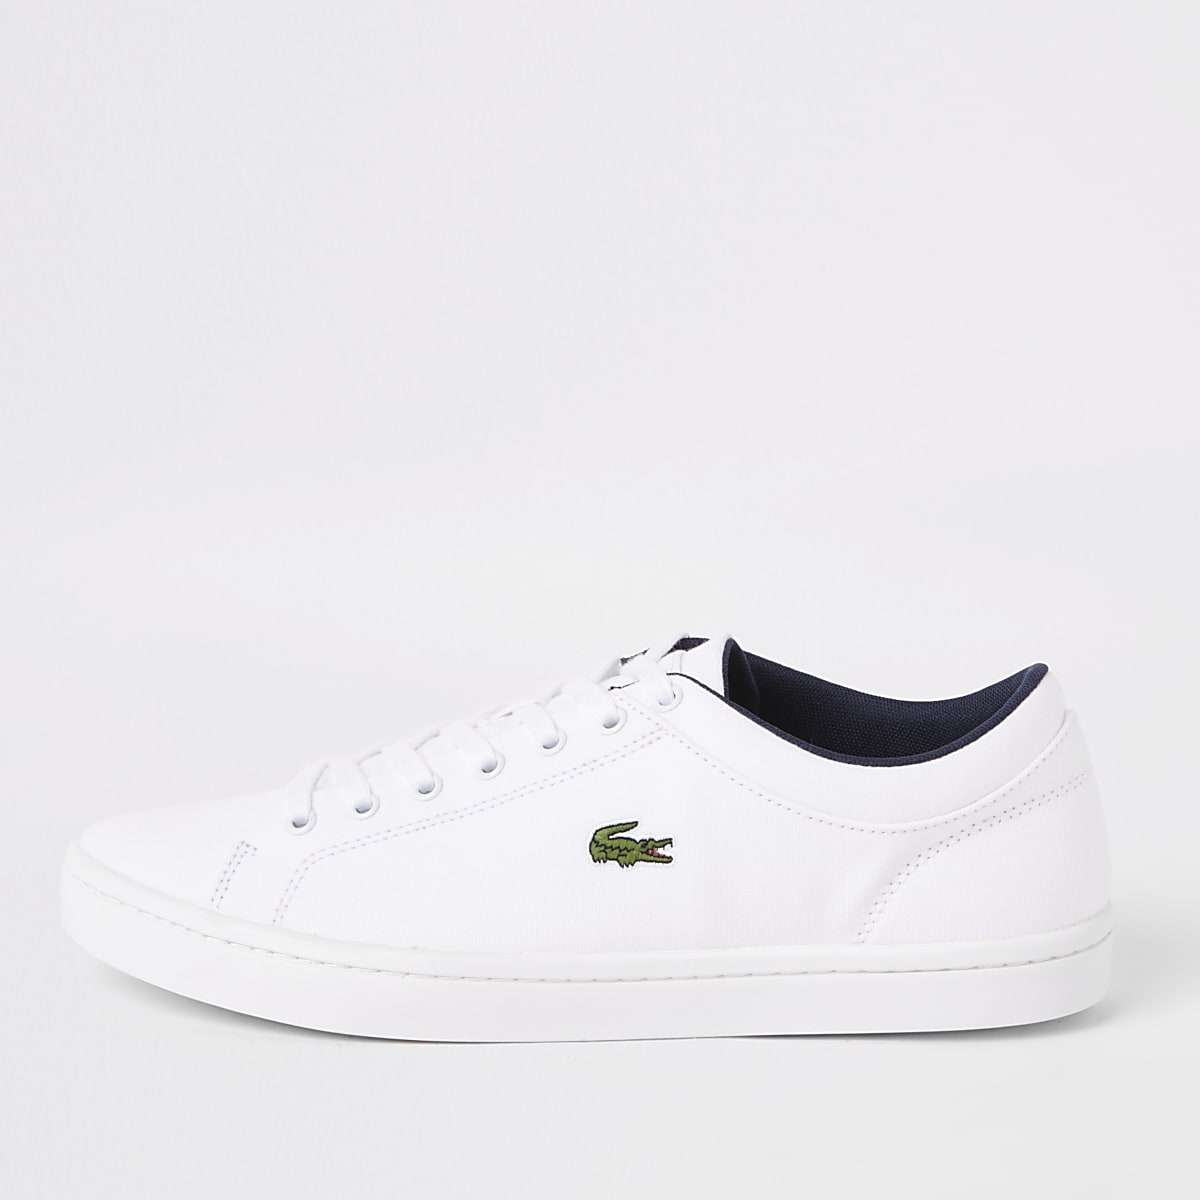 0359891cd Lacoste Straightset white trainers - Trainers - Shoes   Boots - men